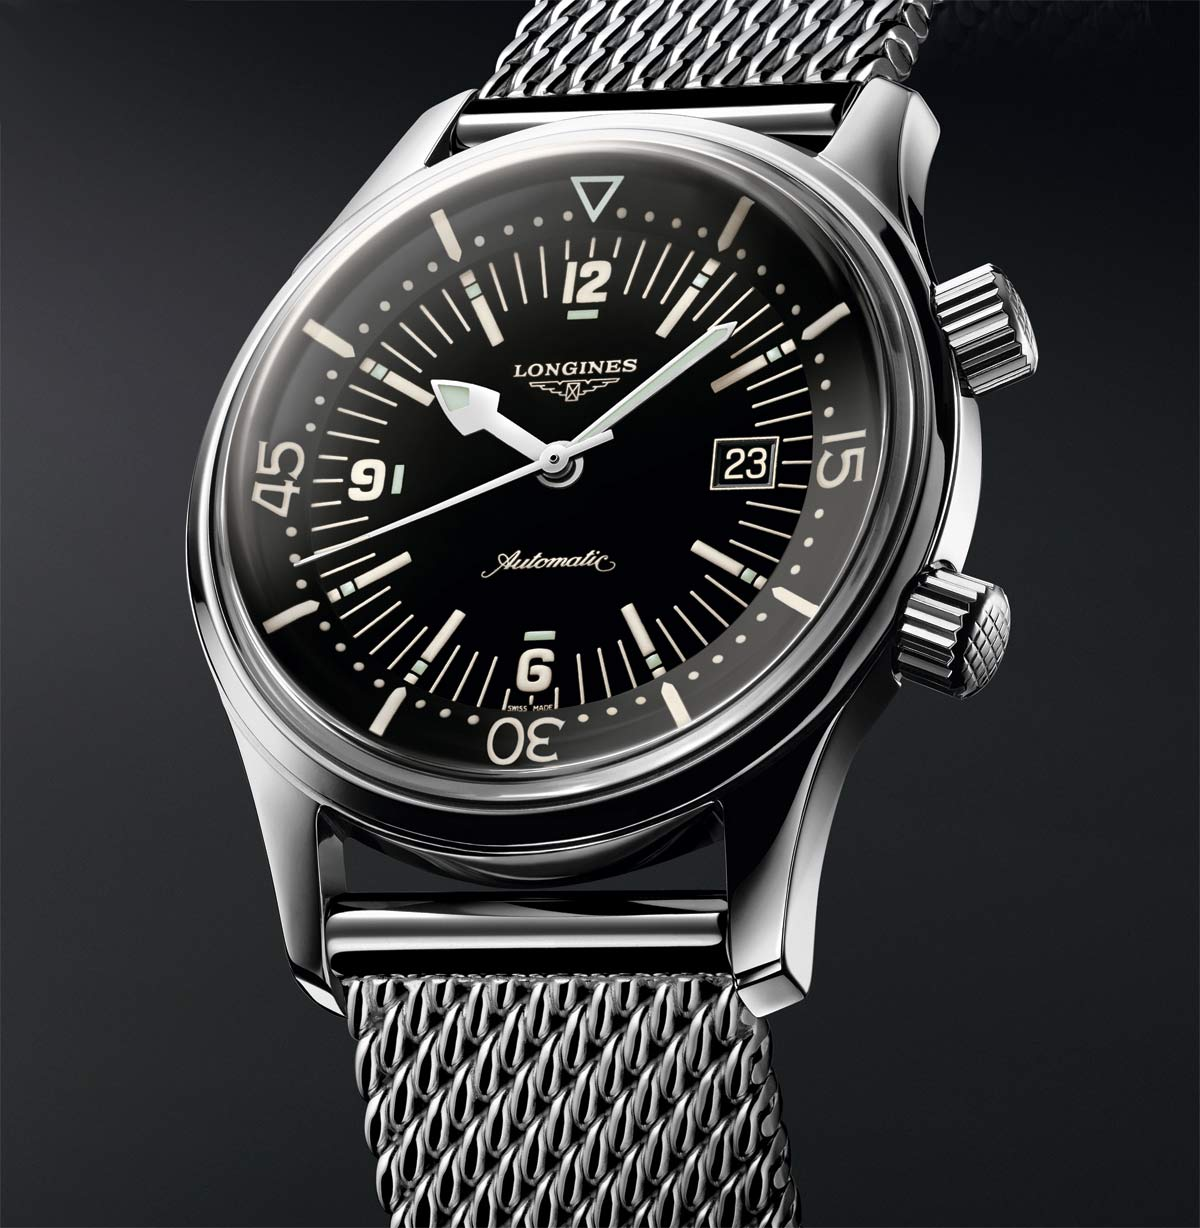 Longines Legend Diver >> Longines - Legend Diver 10th Anniversary | Time and Watches